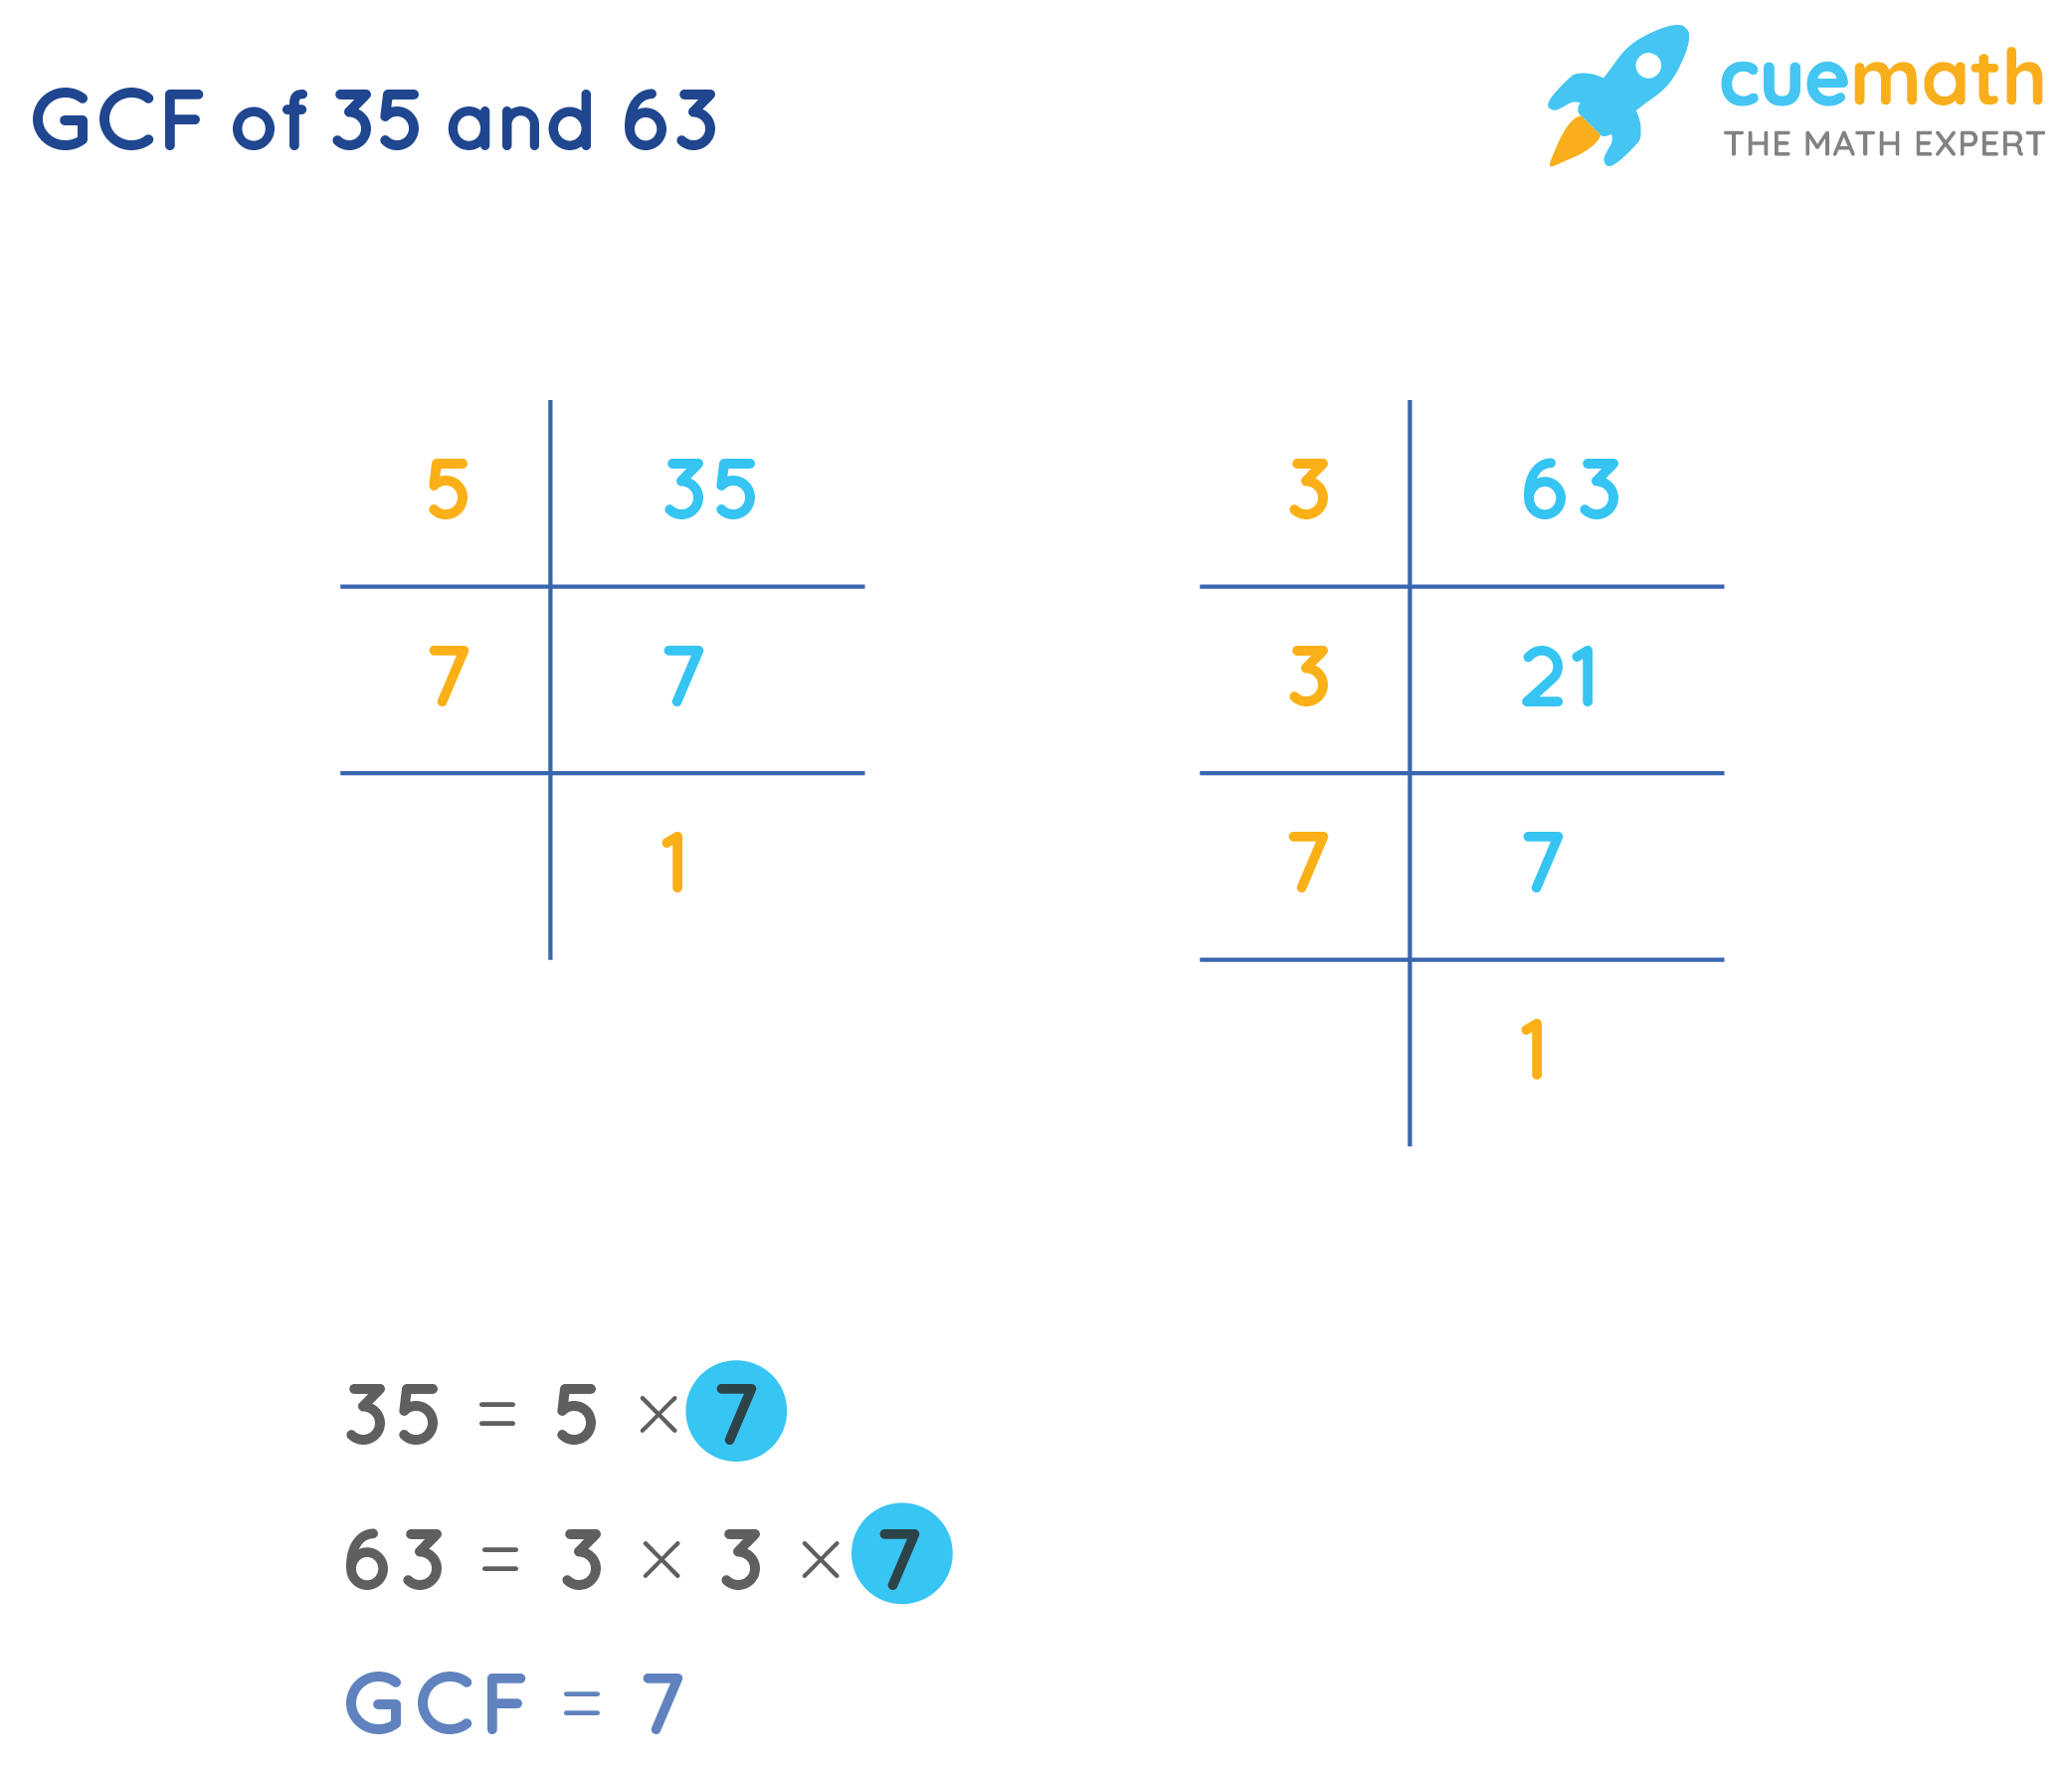 Greatest Common Factor of 35 and 63 by Prime Factorization